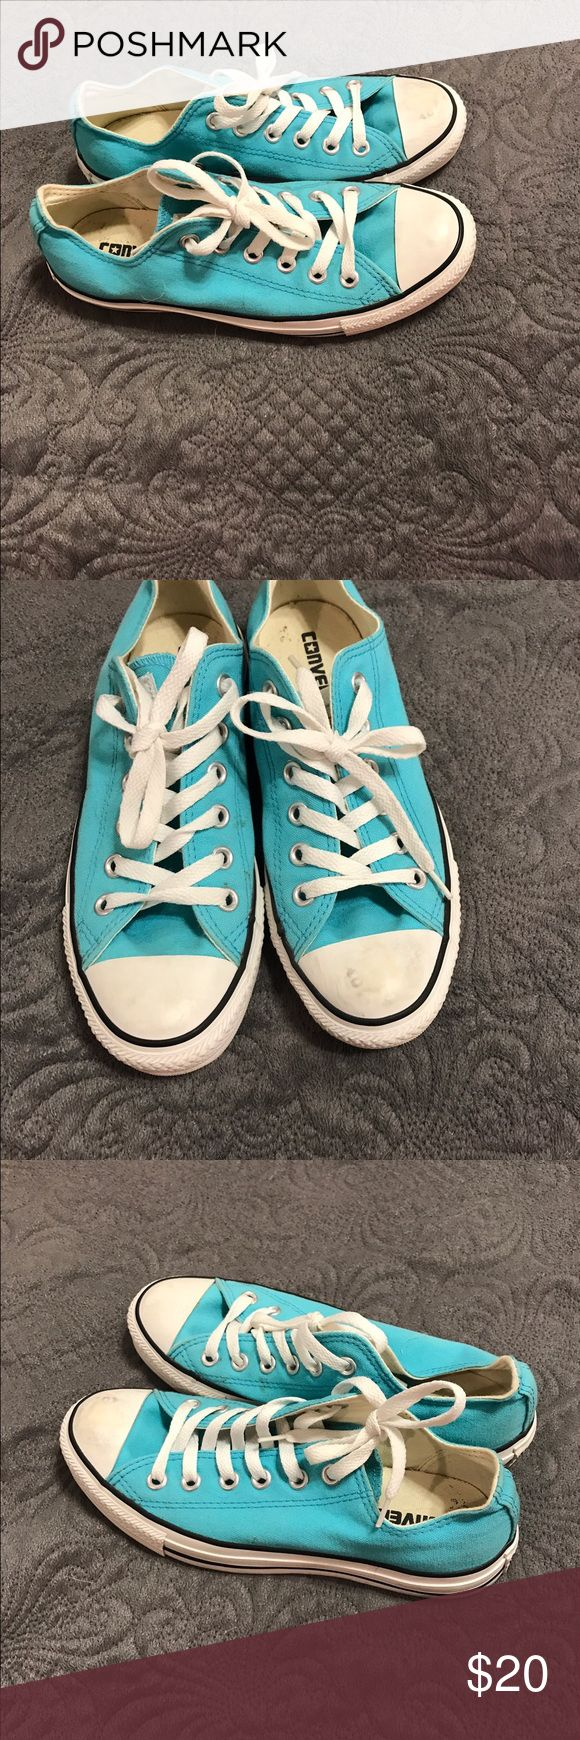 Aqua/teal converse Men's size 5/ women's 7. Slightly dirty. Worn a lot but still have a lot of life left in them. $20 obo Converse Shoes Sneakers